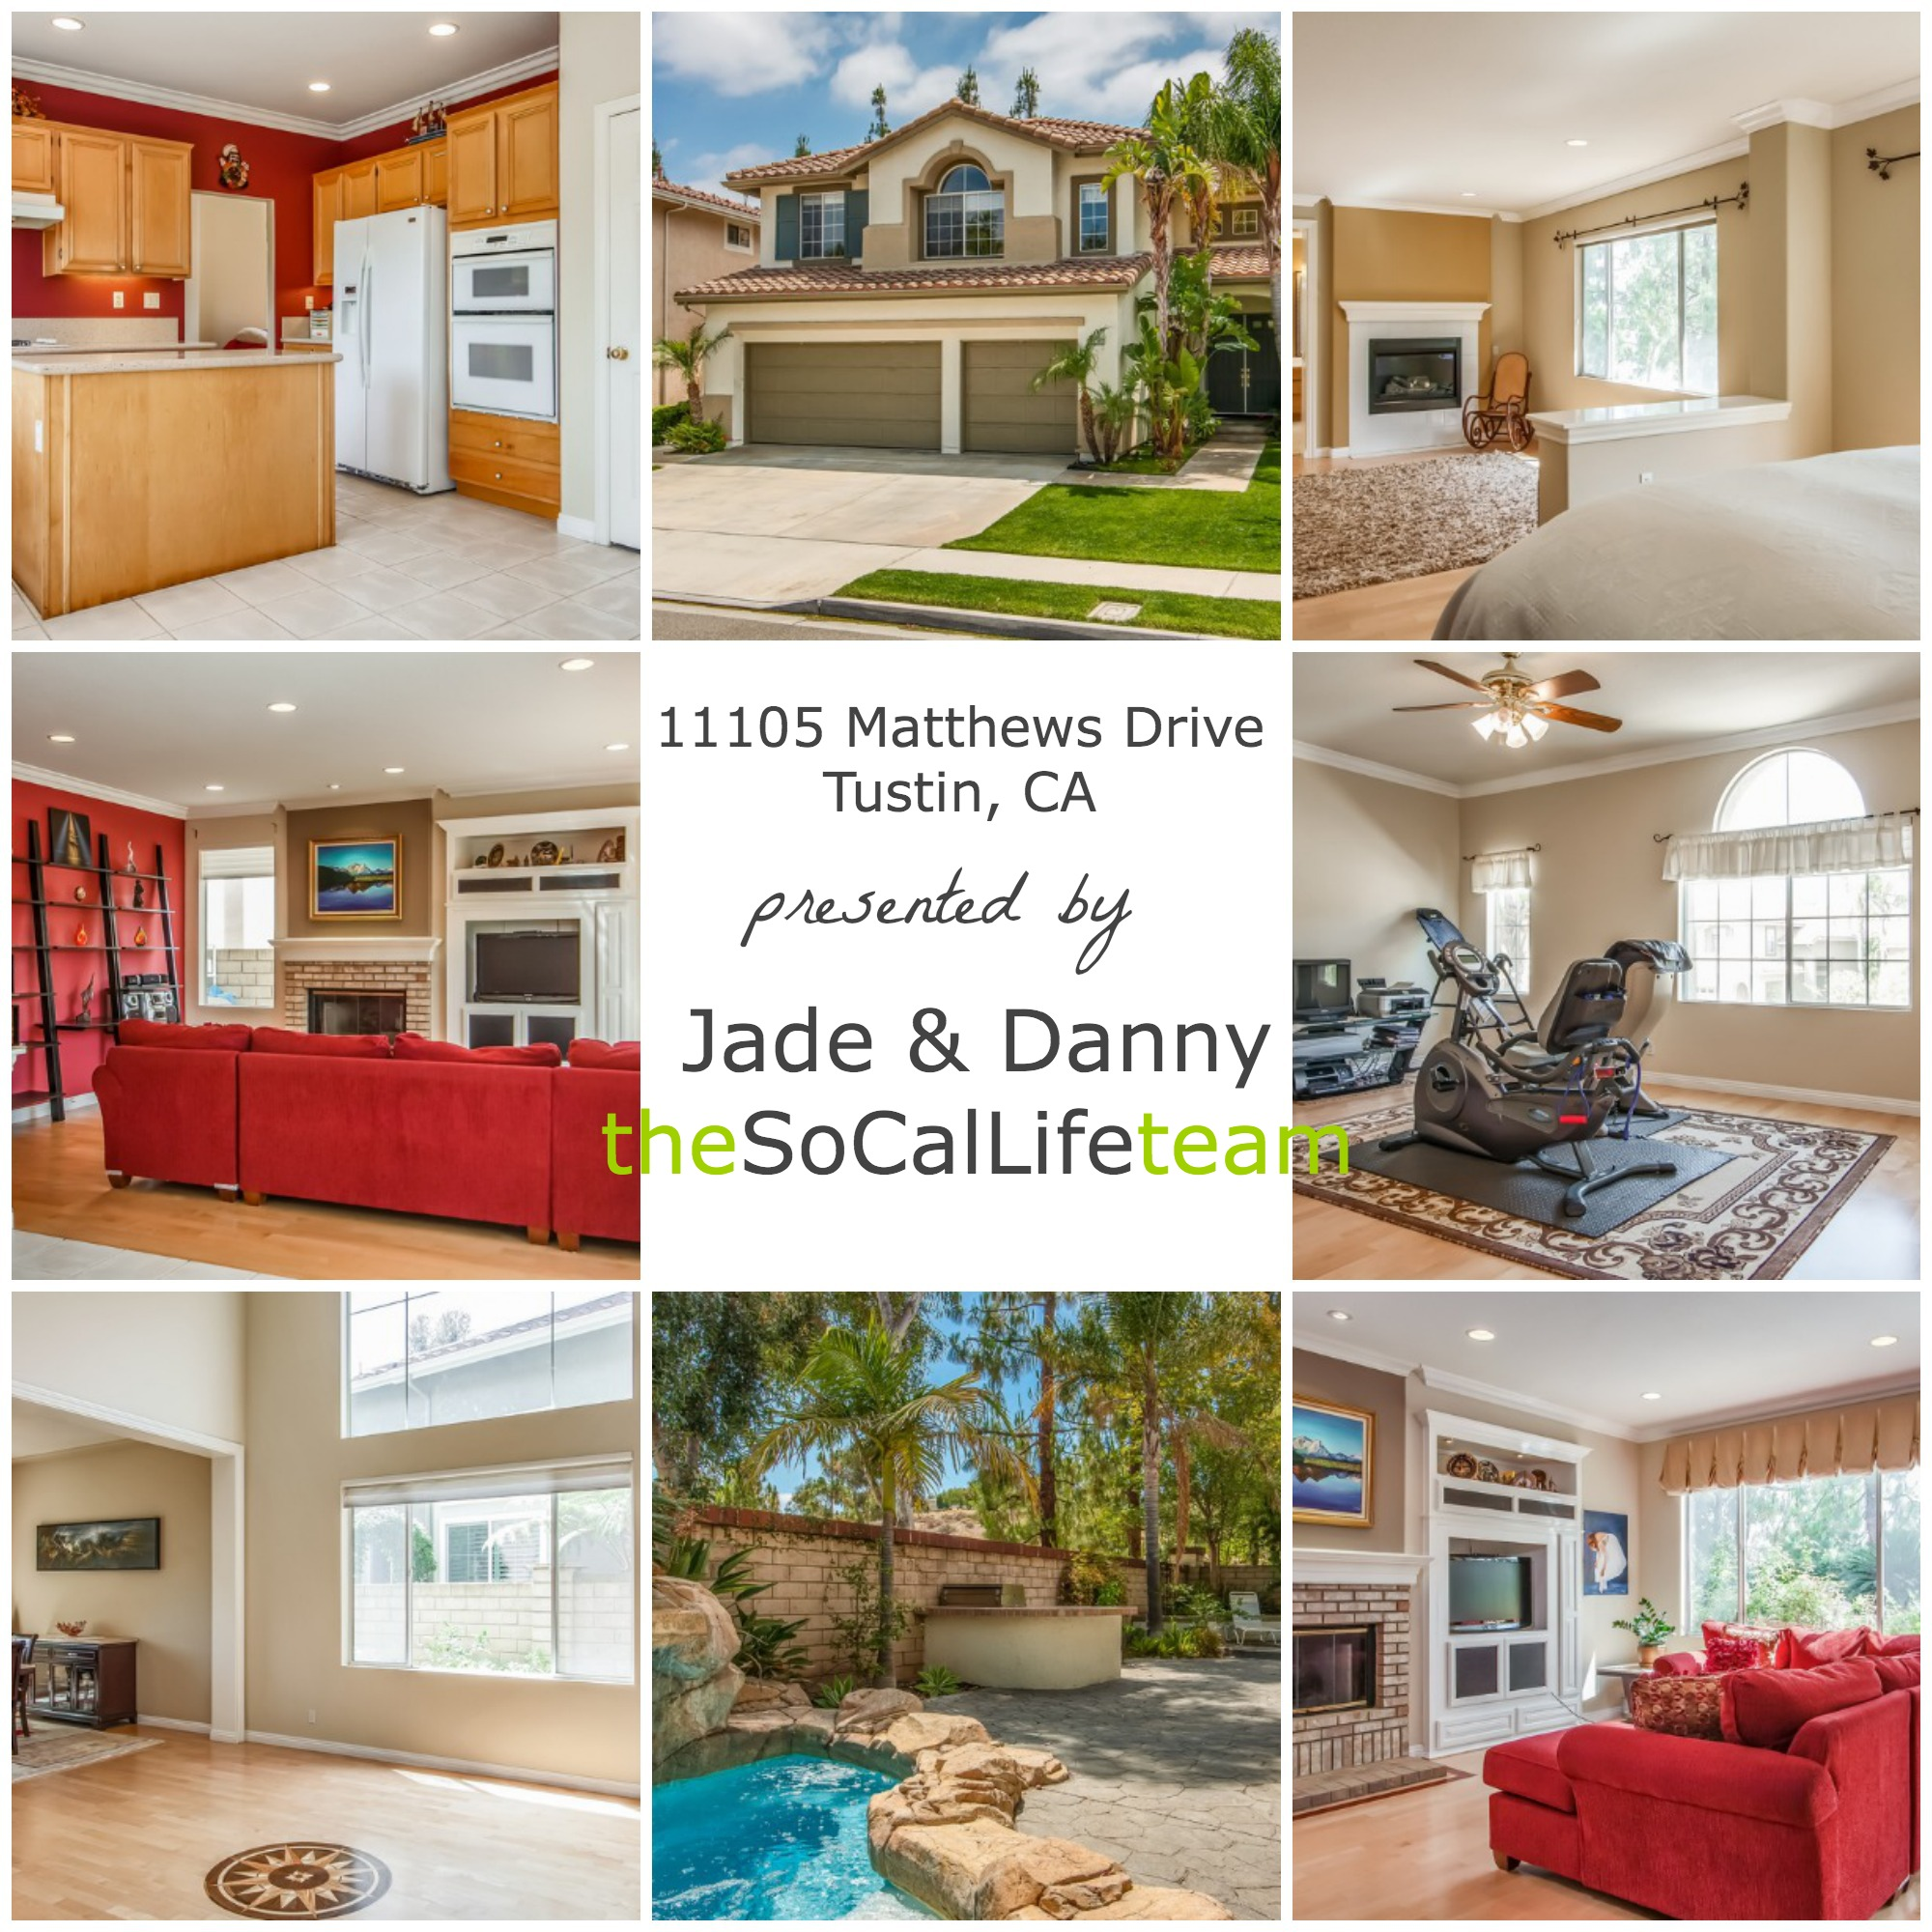 Home For Sale in Tustin Ca